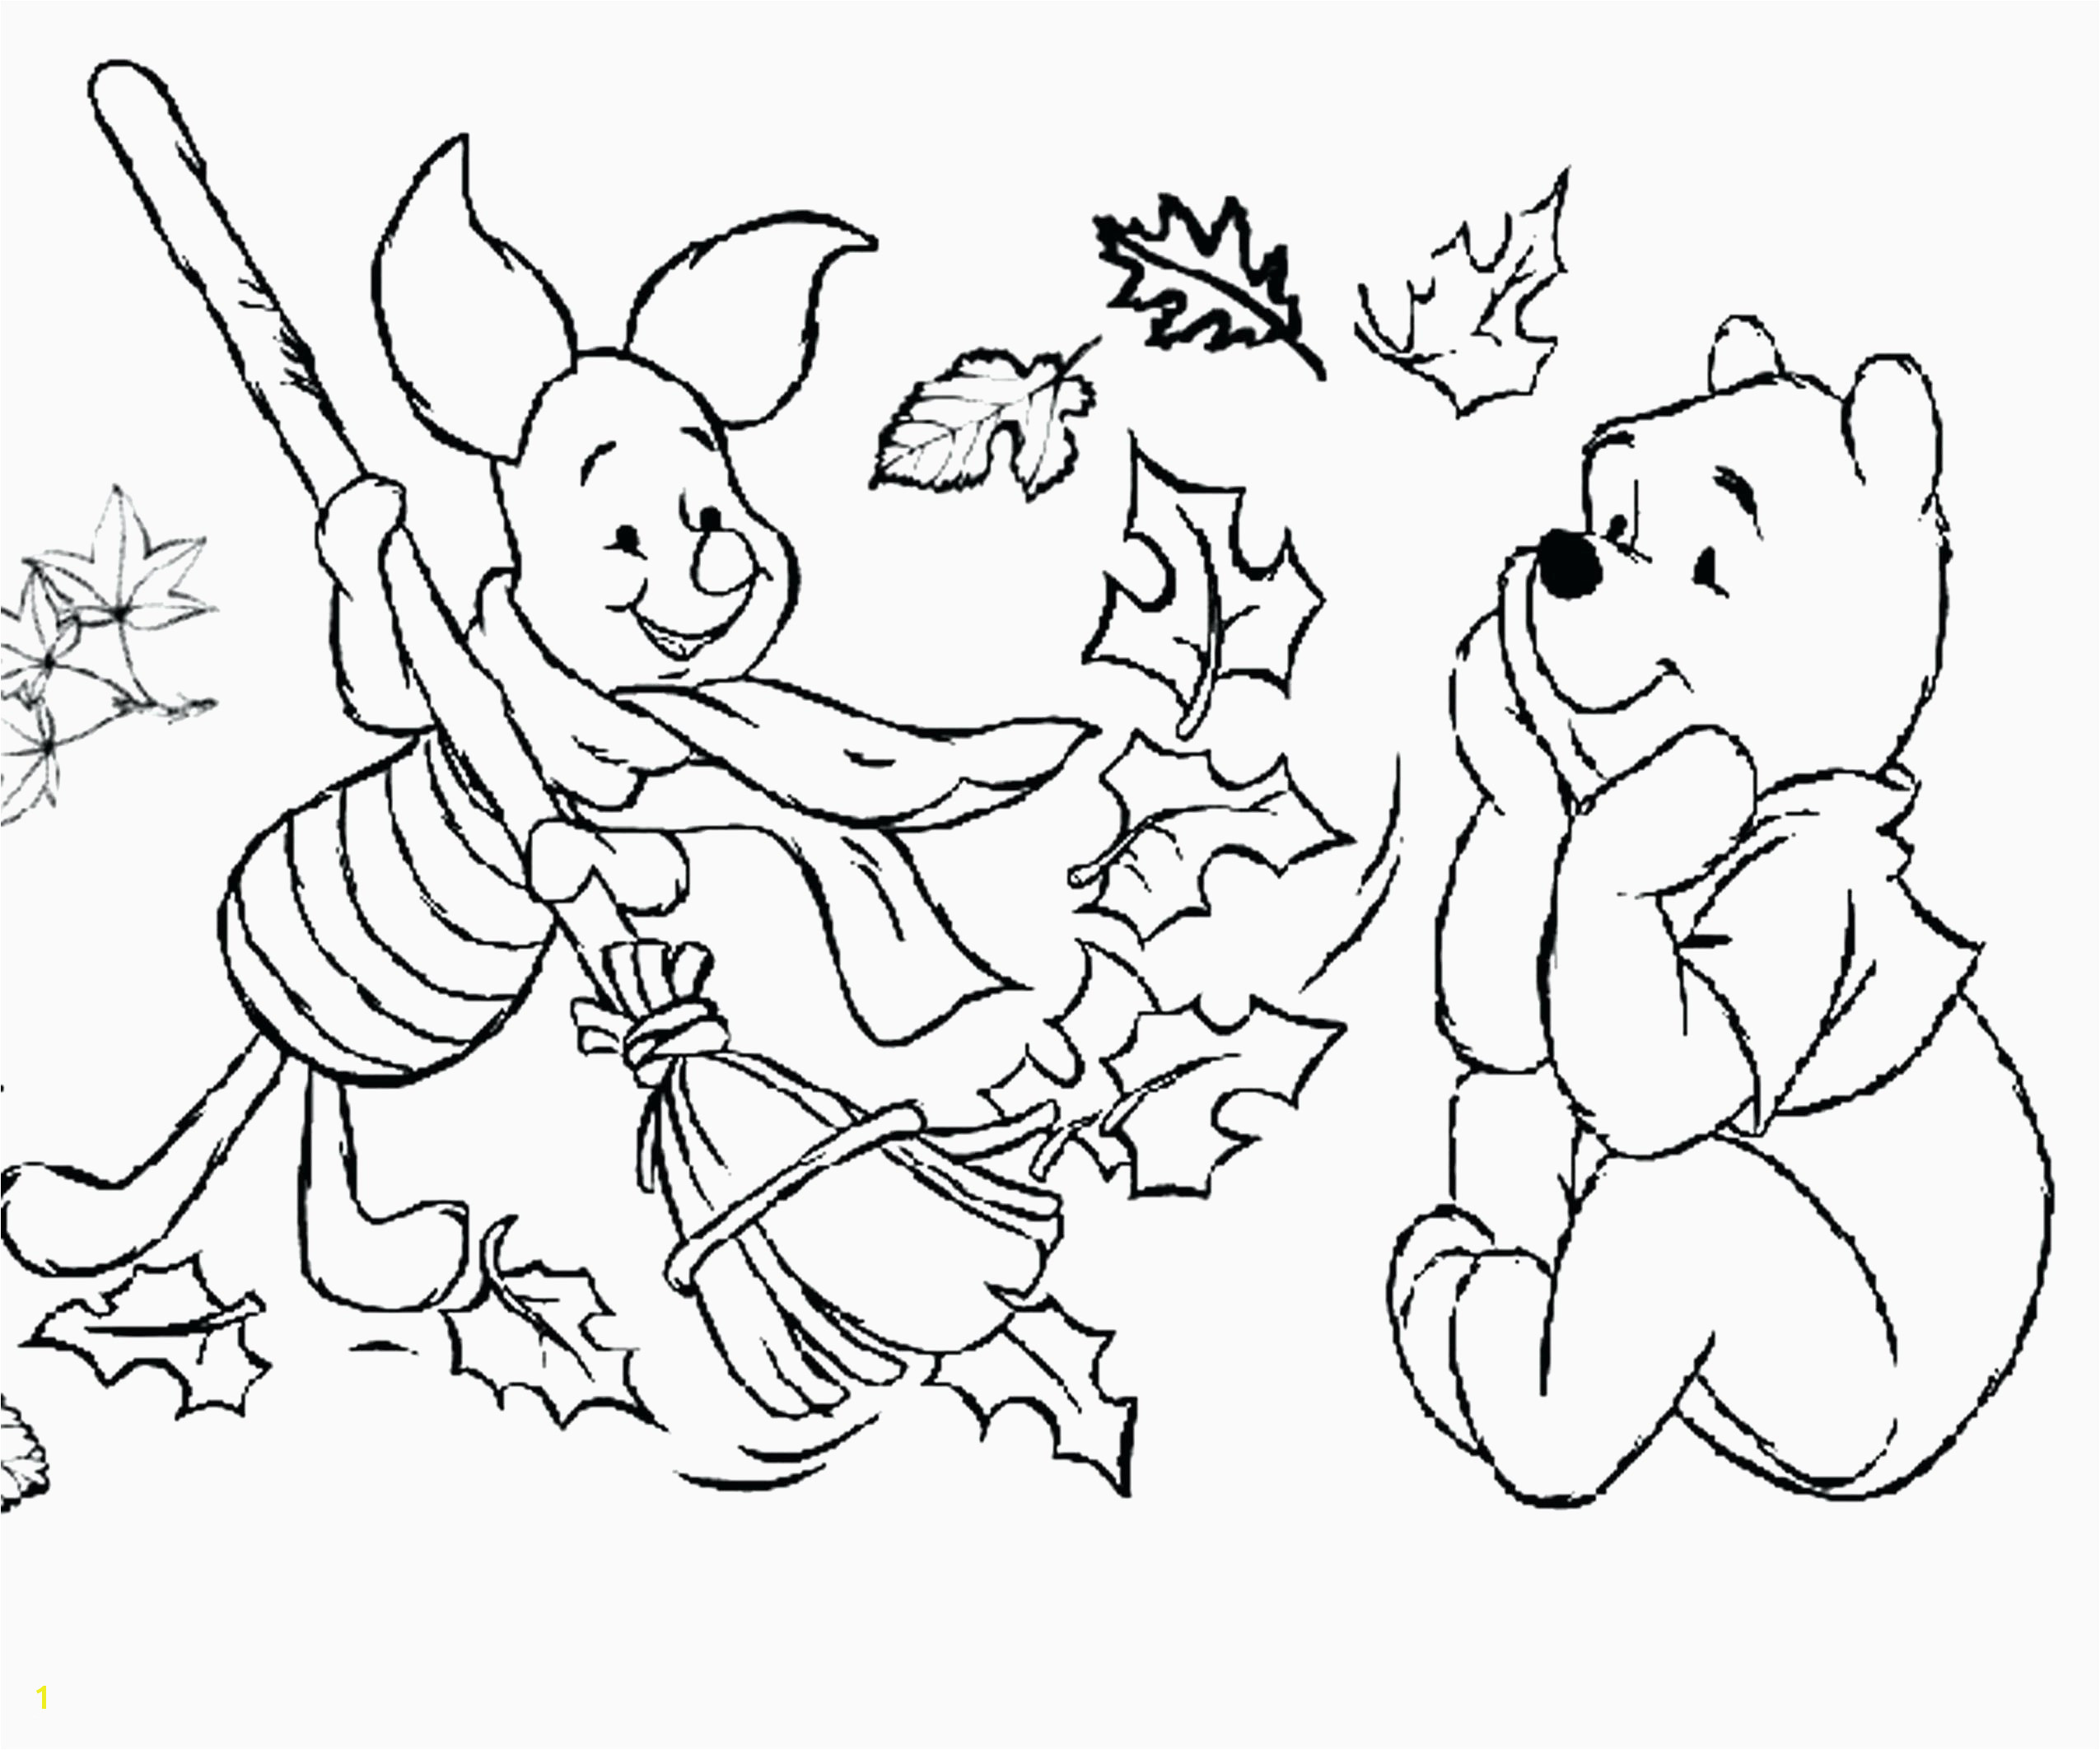 Unique Angry Birds Coloring Pages for Learning Colors Flower Neu Ausmalbilder Angry Birds mickeycarrollmunchkin